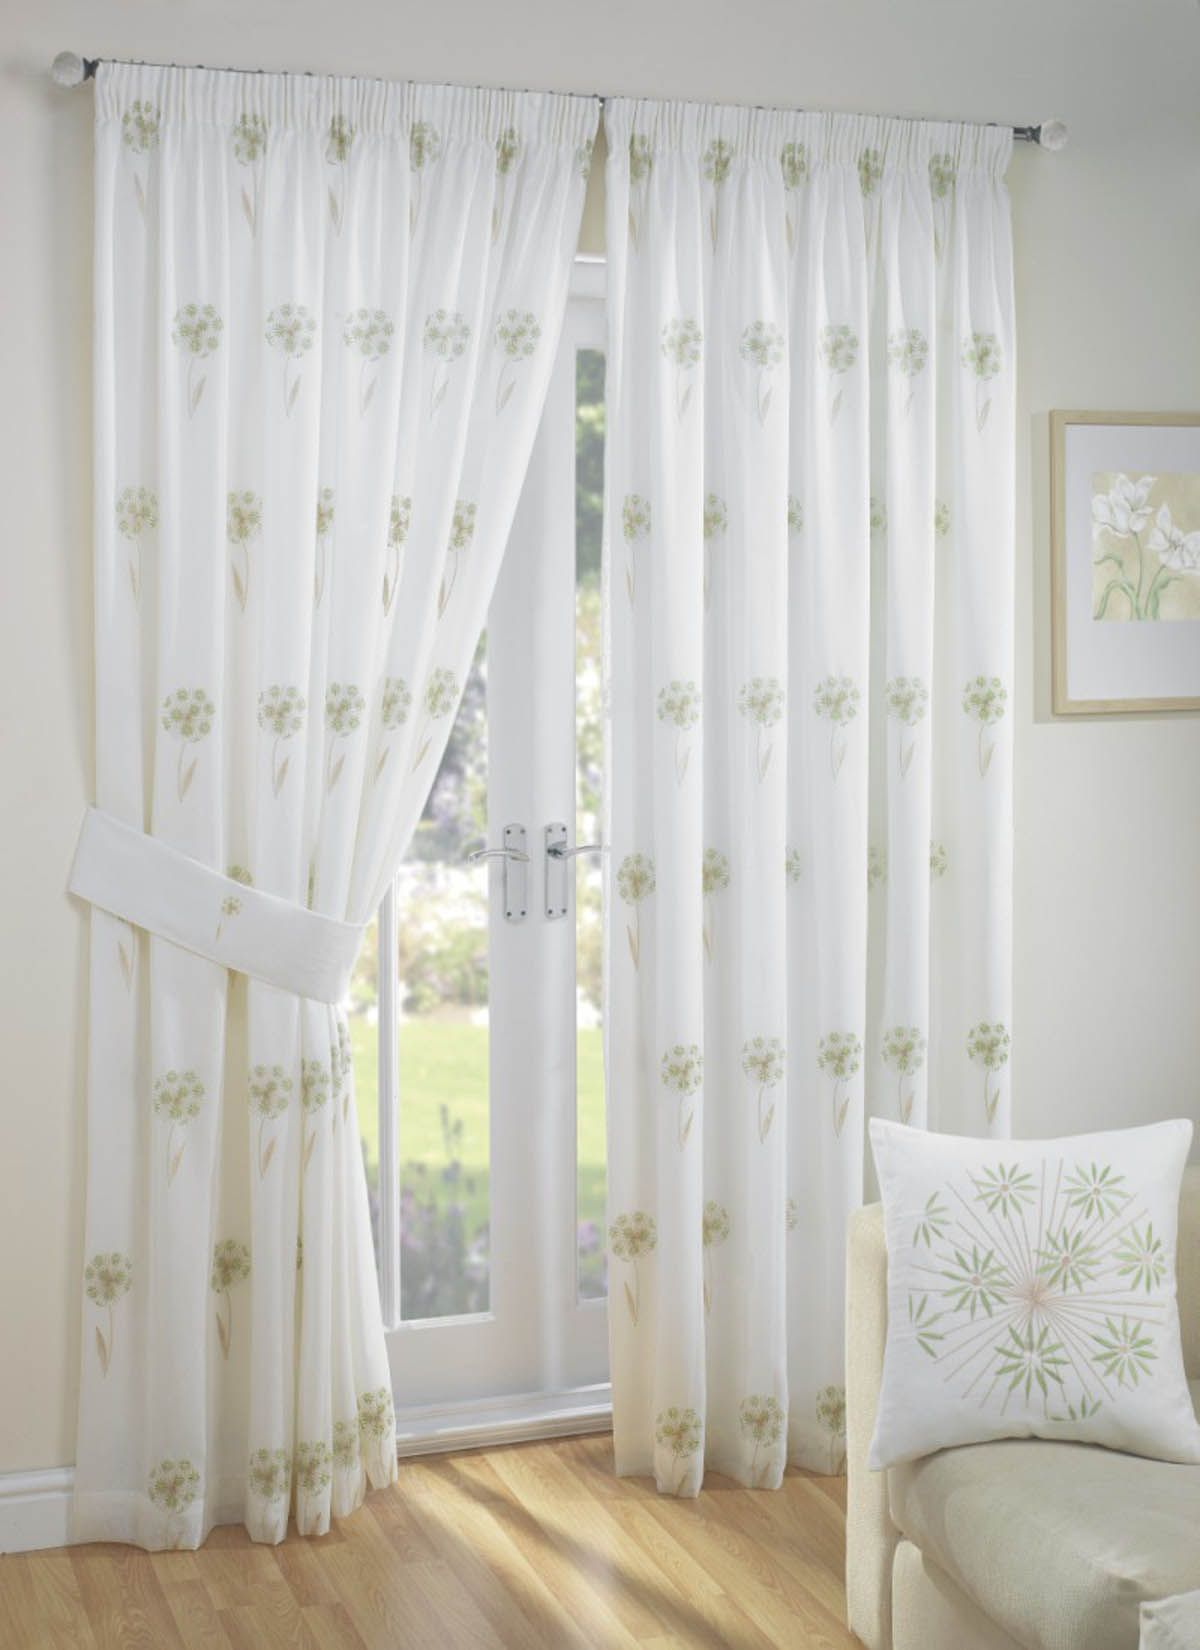 libby lined voile ready made curtain curtains blinds. Black Bedroom Furniture Sets. Home Design Ideas